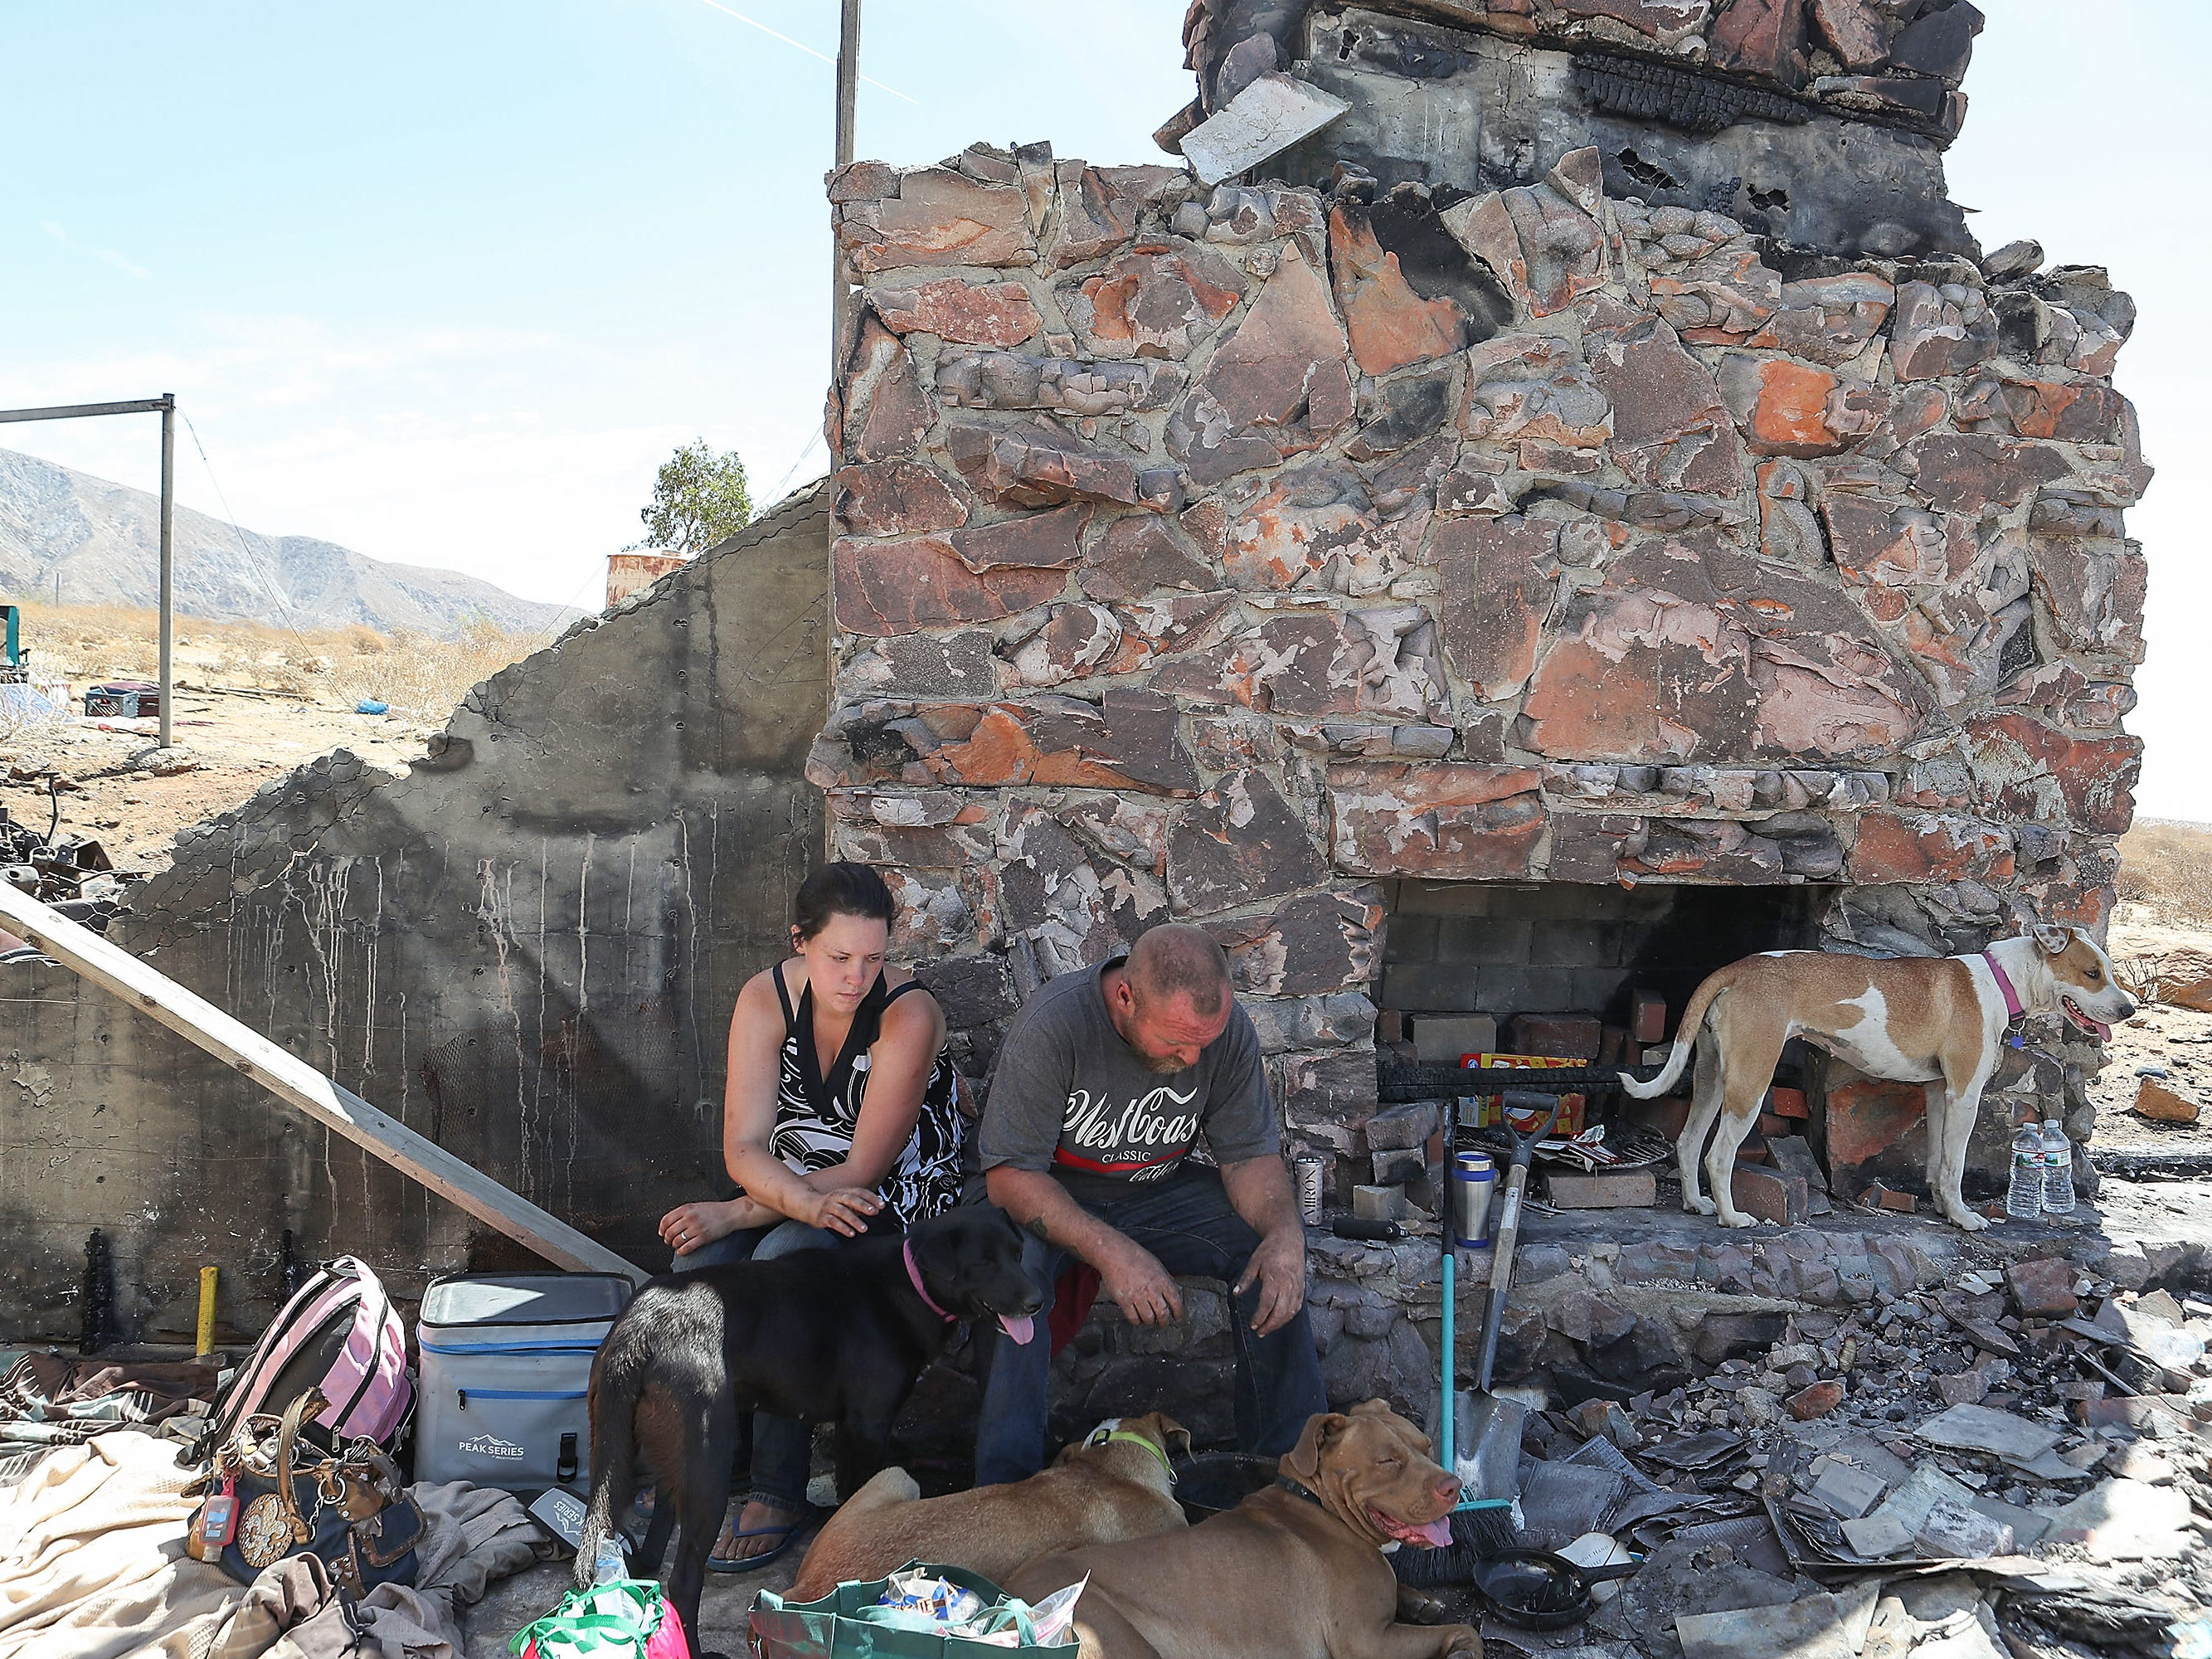 Bryan Hensley and Carene Riale endure triple-digit temperatures in the shade of a burned-down house in Whitewater.  The two were displaced from the Coachella encampment in May of 2018.